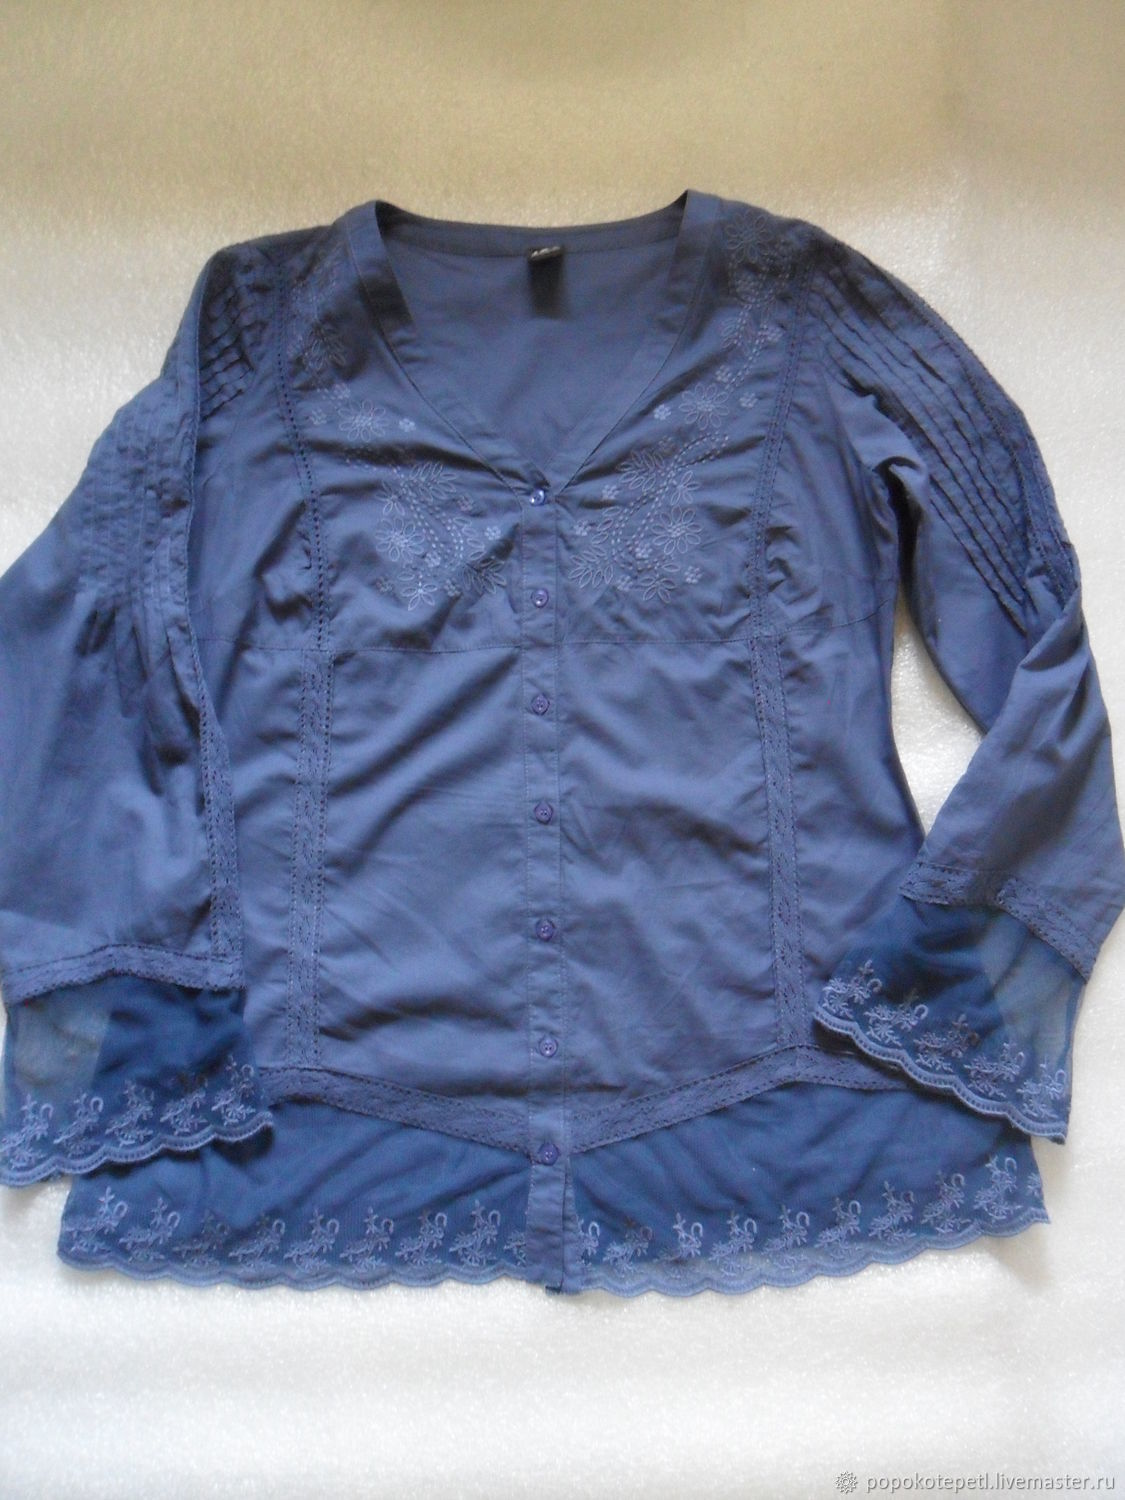 fc6a71e7a579d7 Livemaster - handmade. Buy Vintage shirt,style boho,cotton with lace ...